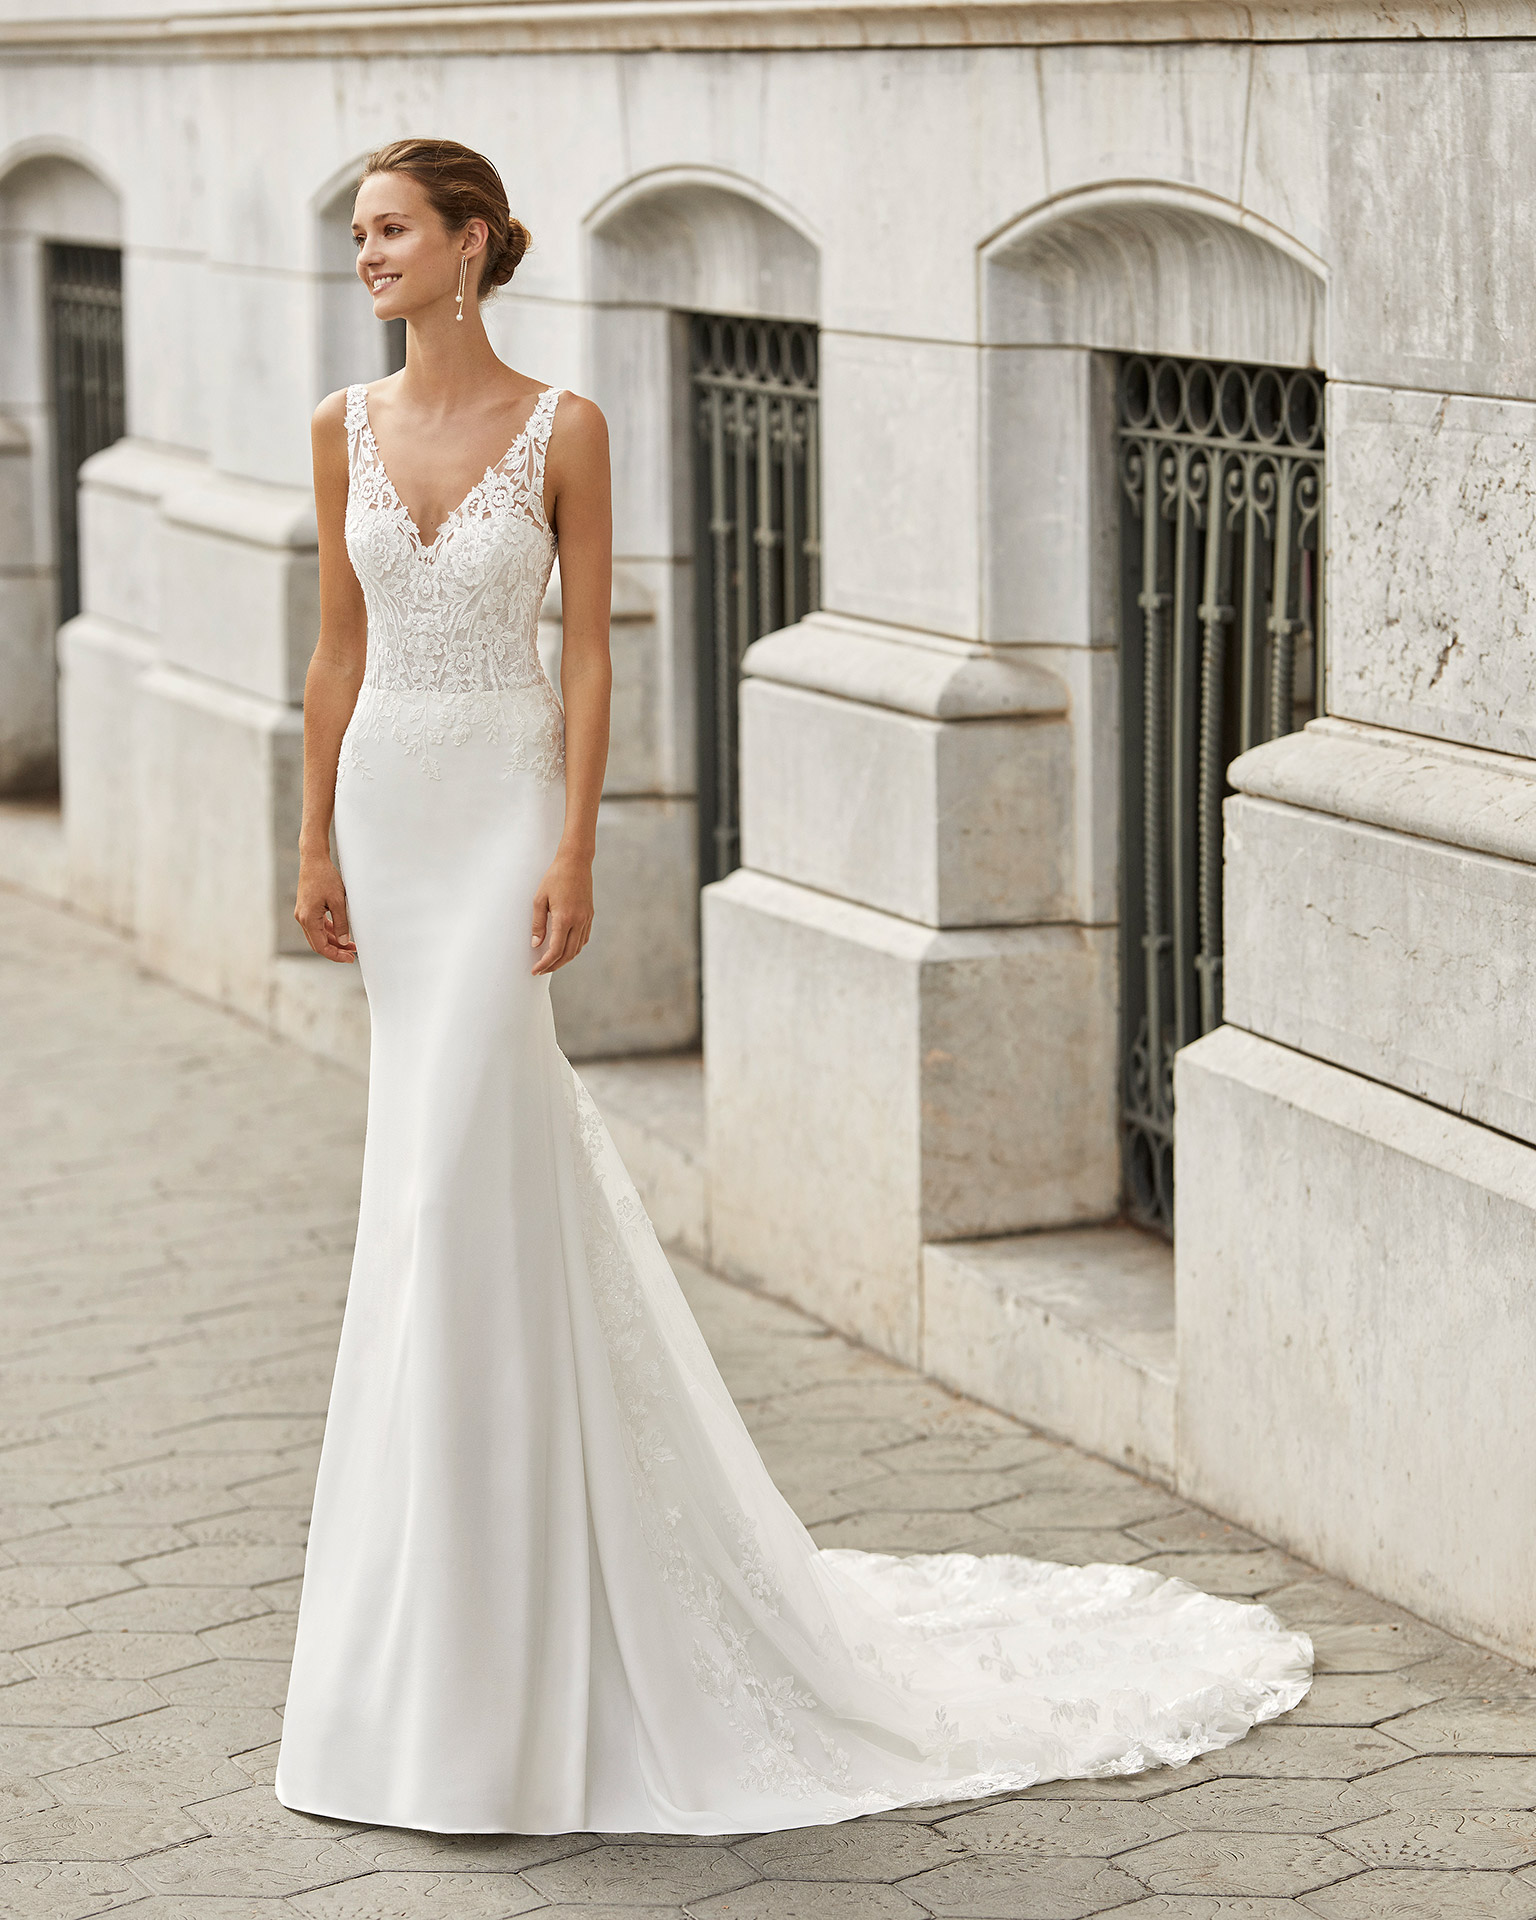 Mermaid wedding dress in stretch crepe with shaping lining and beaded lace. With V-neck and V-back. 2022  Collection.